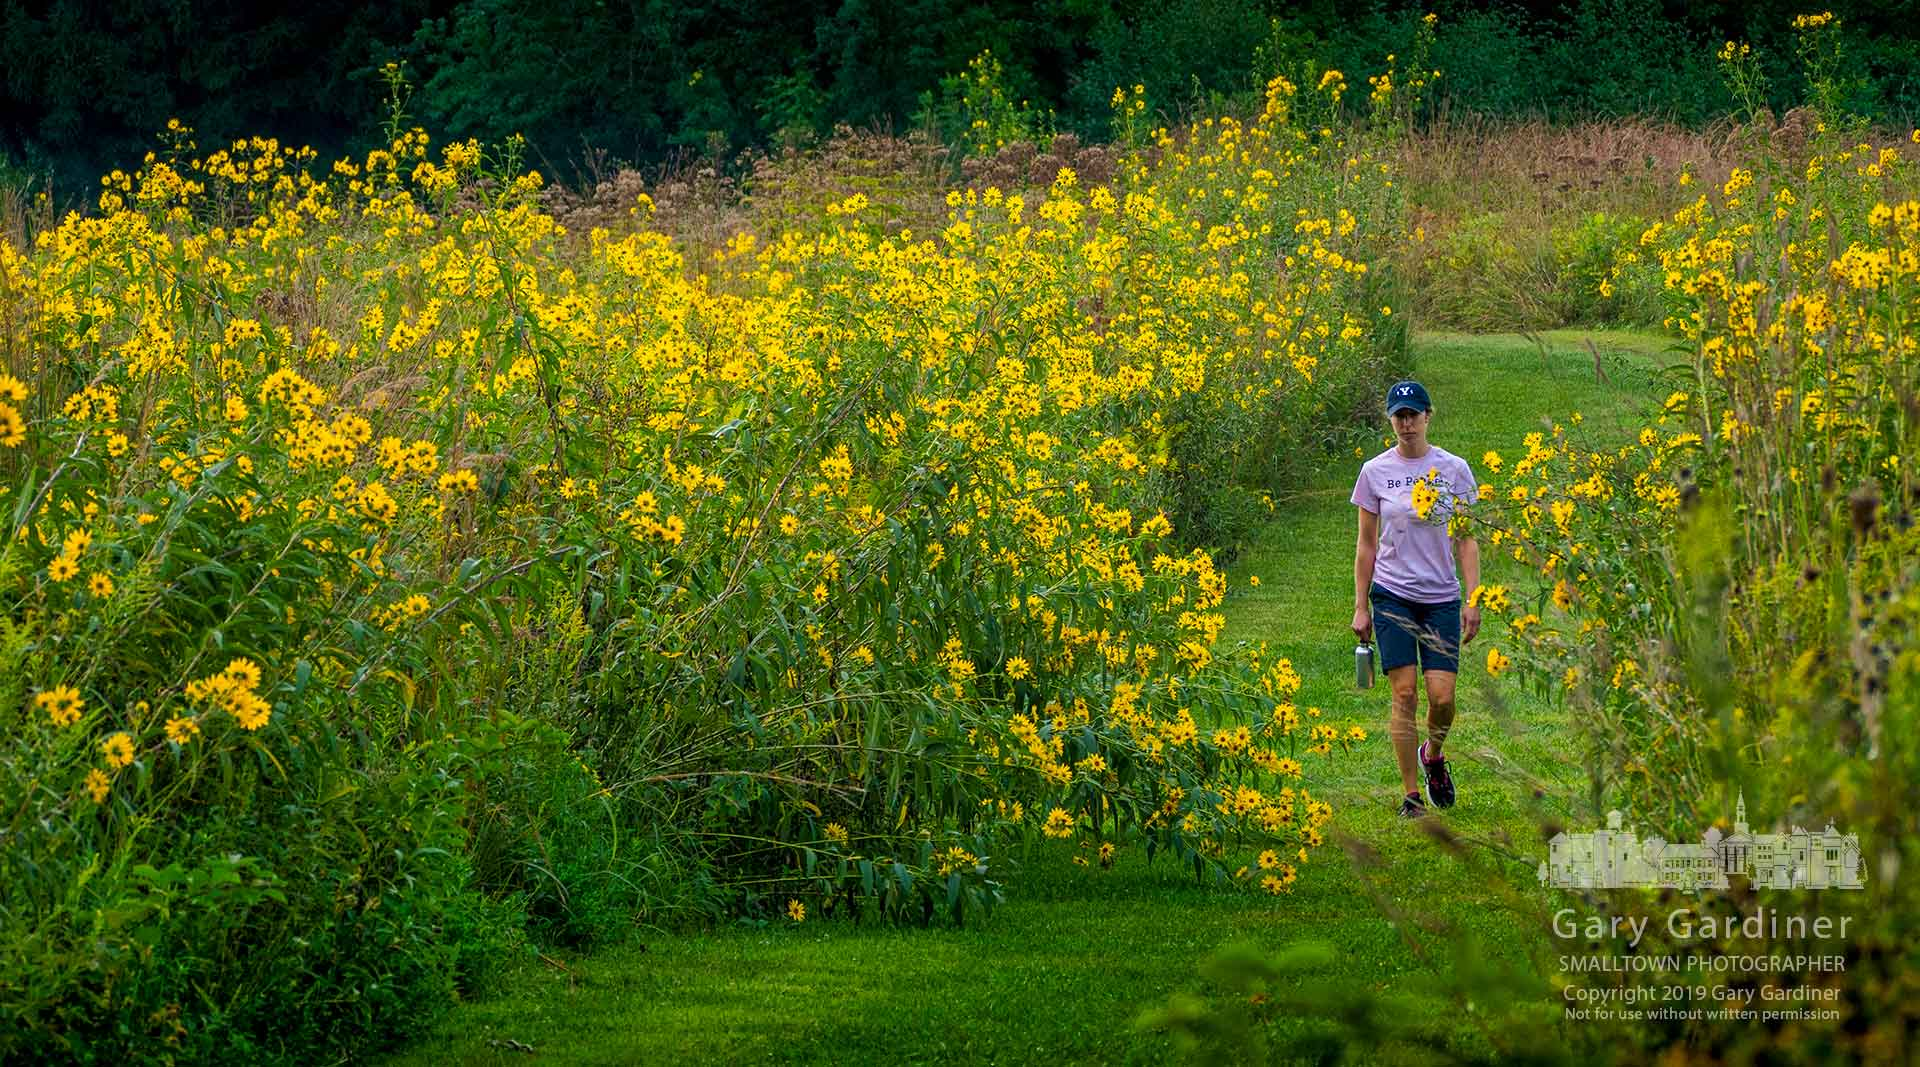 A woman walks through a section of a path narrowed by wildflowers falling across the mowed portion at Sharon Woods. My Final Photo for Sept. 7, 2019.